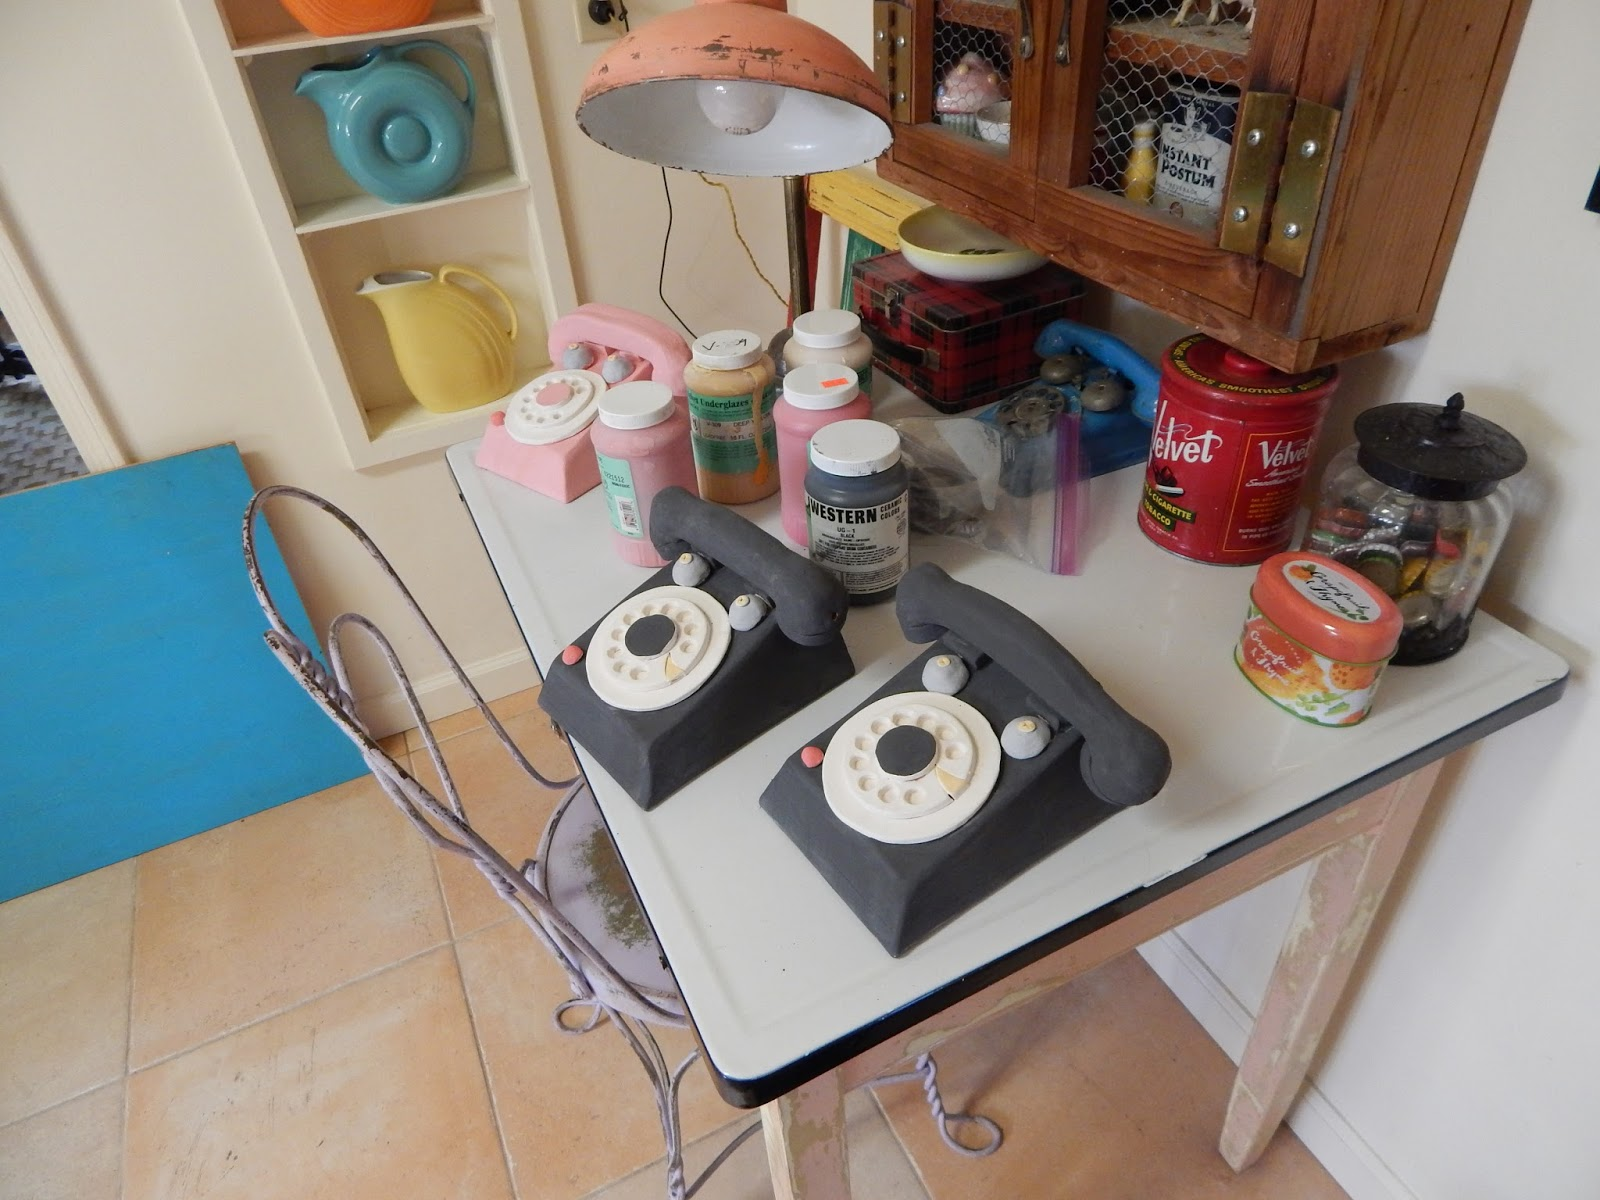 Polka Dot Clay Studio: Kitchen Disasters